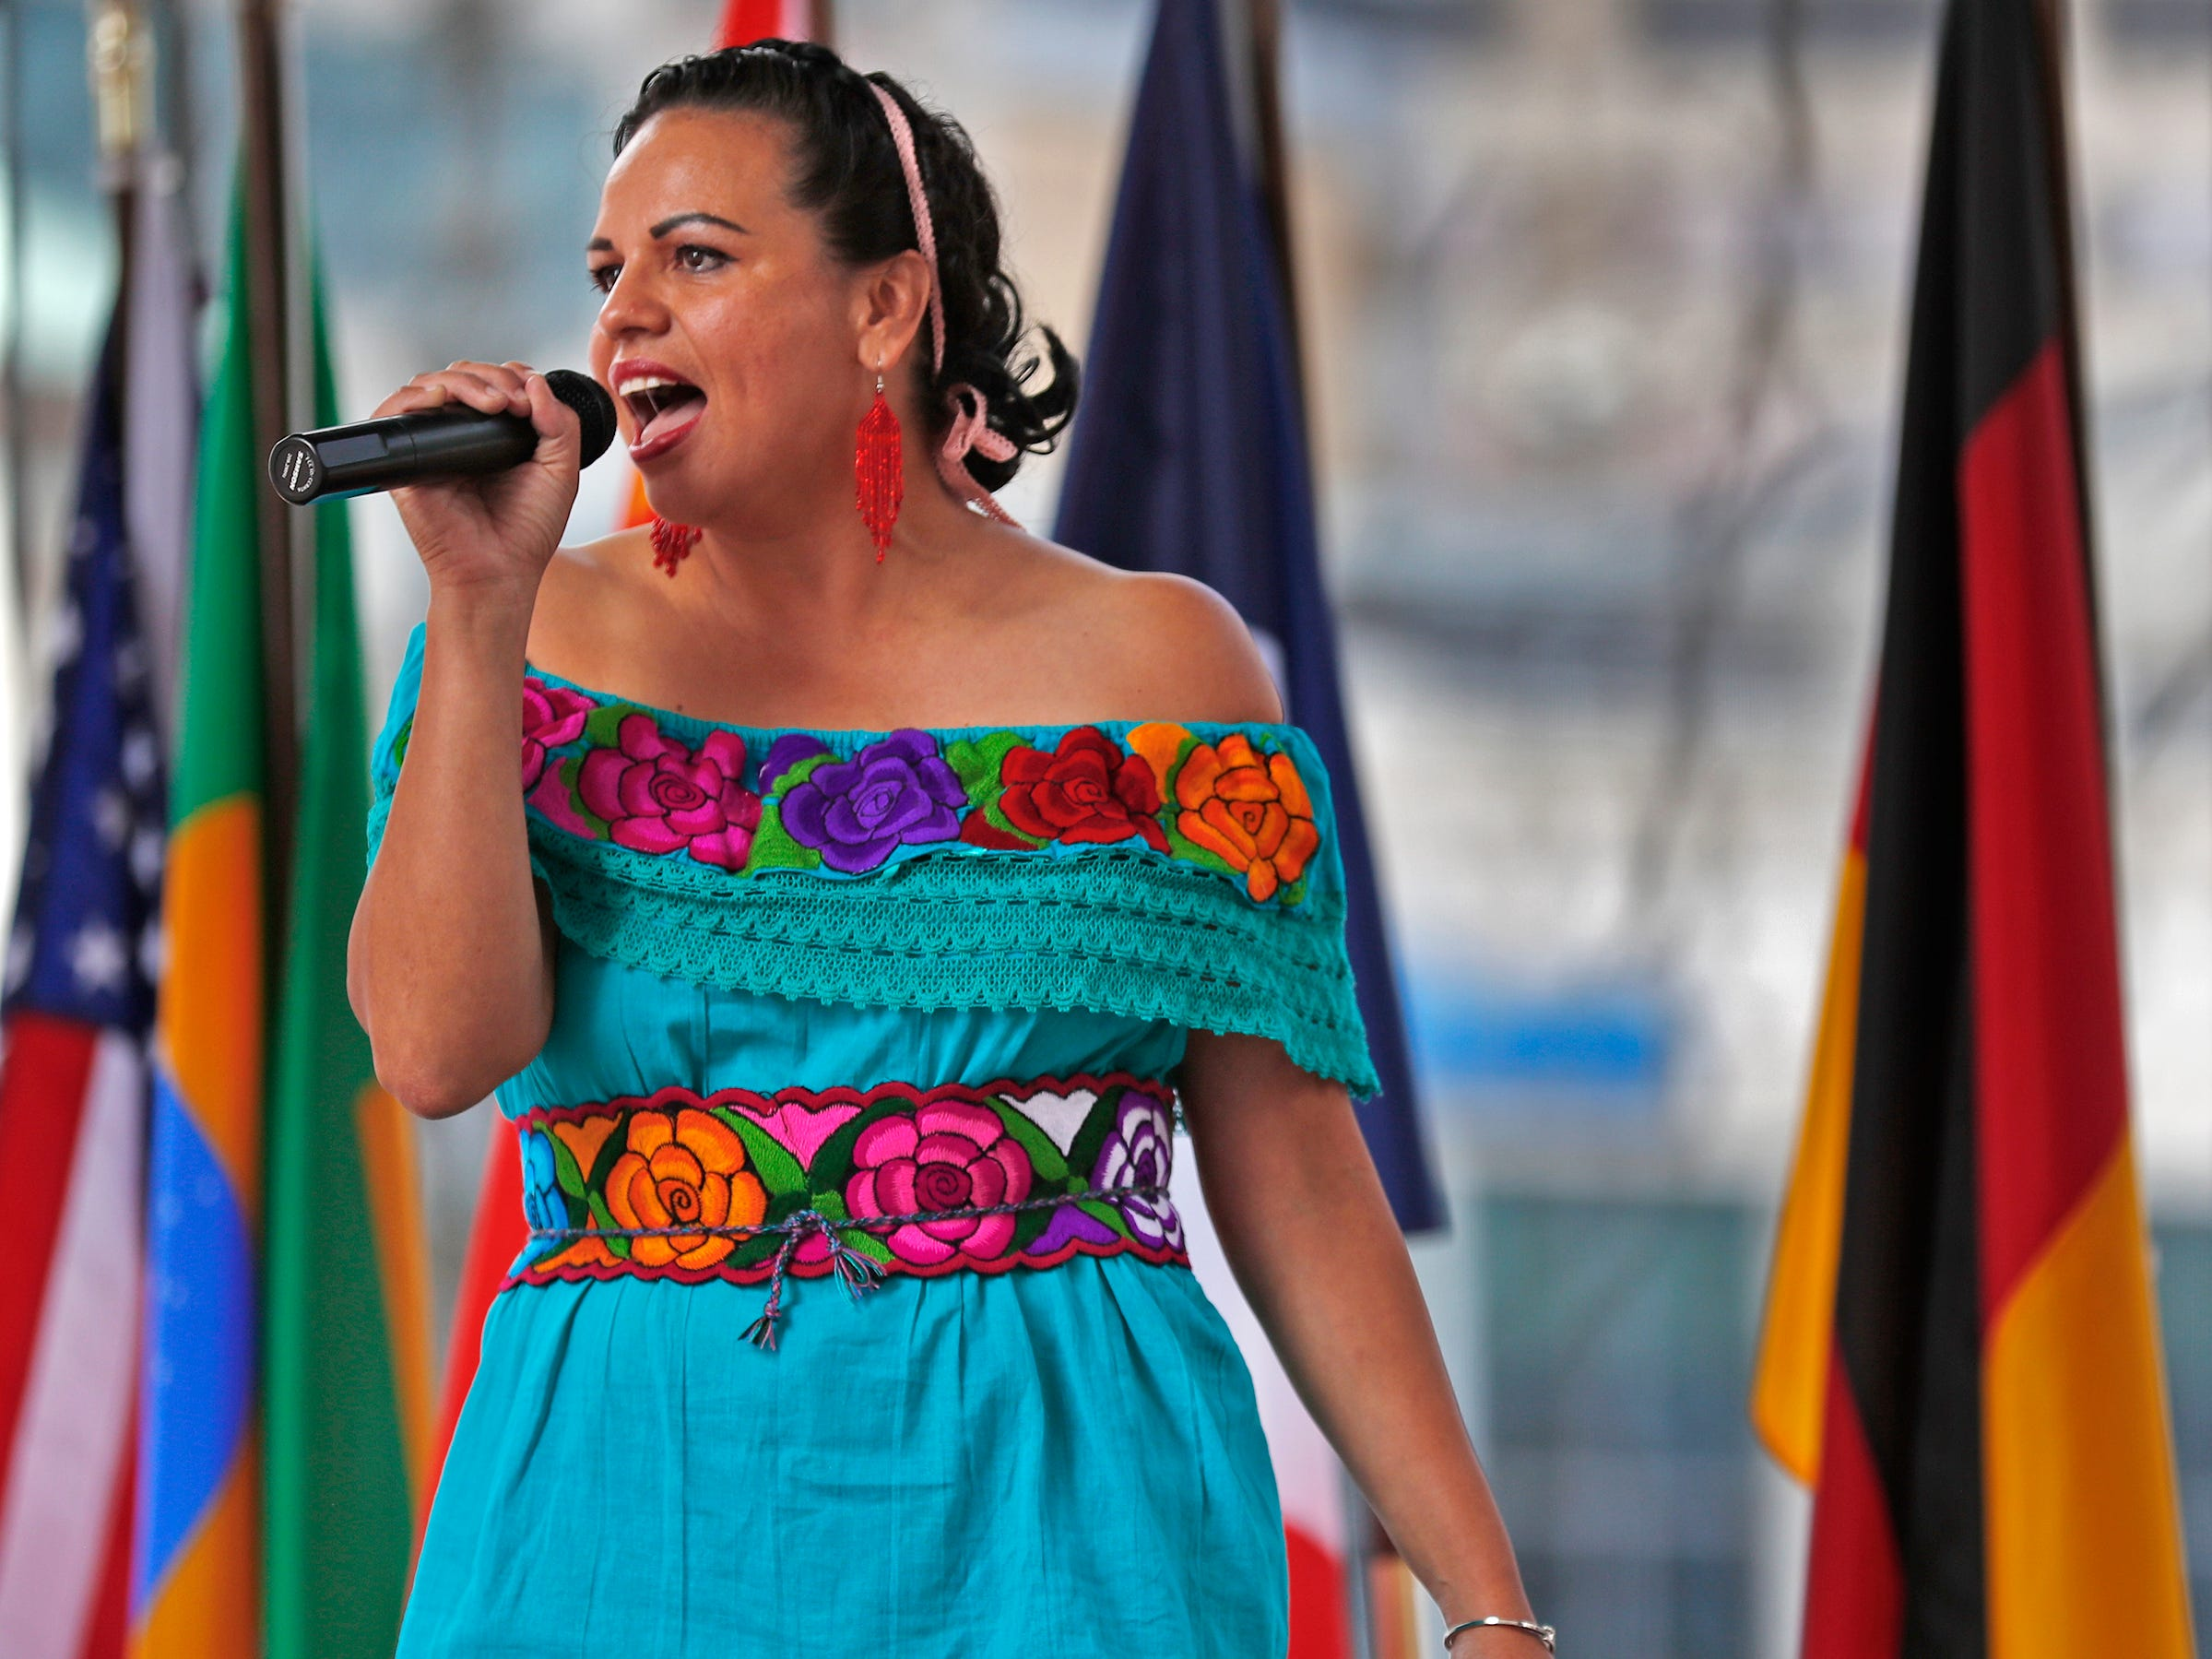 Singers, musicians and dancers from a variety of cultures performed during the YMCA World Fest, on Monument Circle, Thursday, Sept. 13, 2018. YMCA of Greater Indianapolis hosts the free event that celebrates cultures including international food vendors, music, sports, and performers.